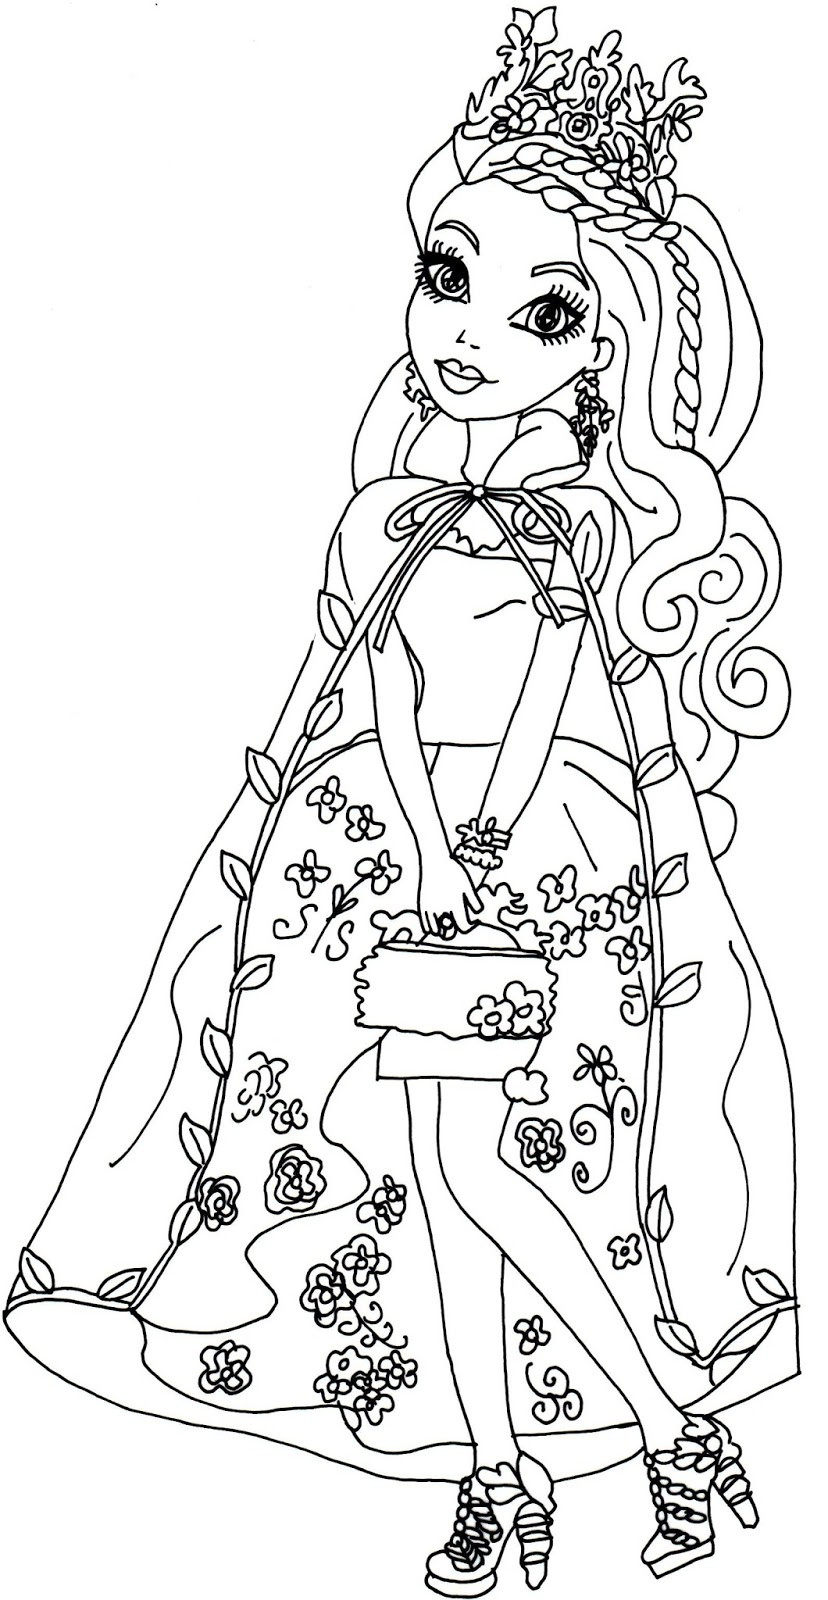 Coloring Pages To Color Online For Free  Ever After High Coloring Pages Best Coloring Pages For Kids